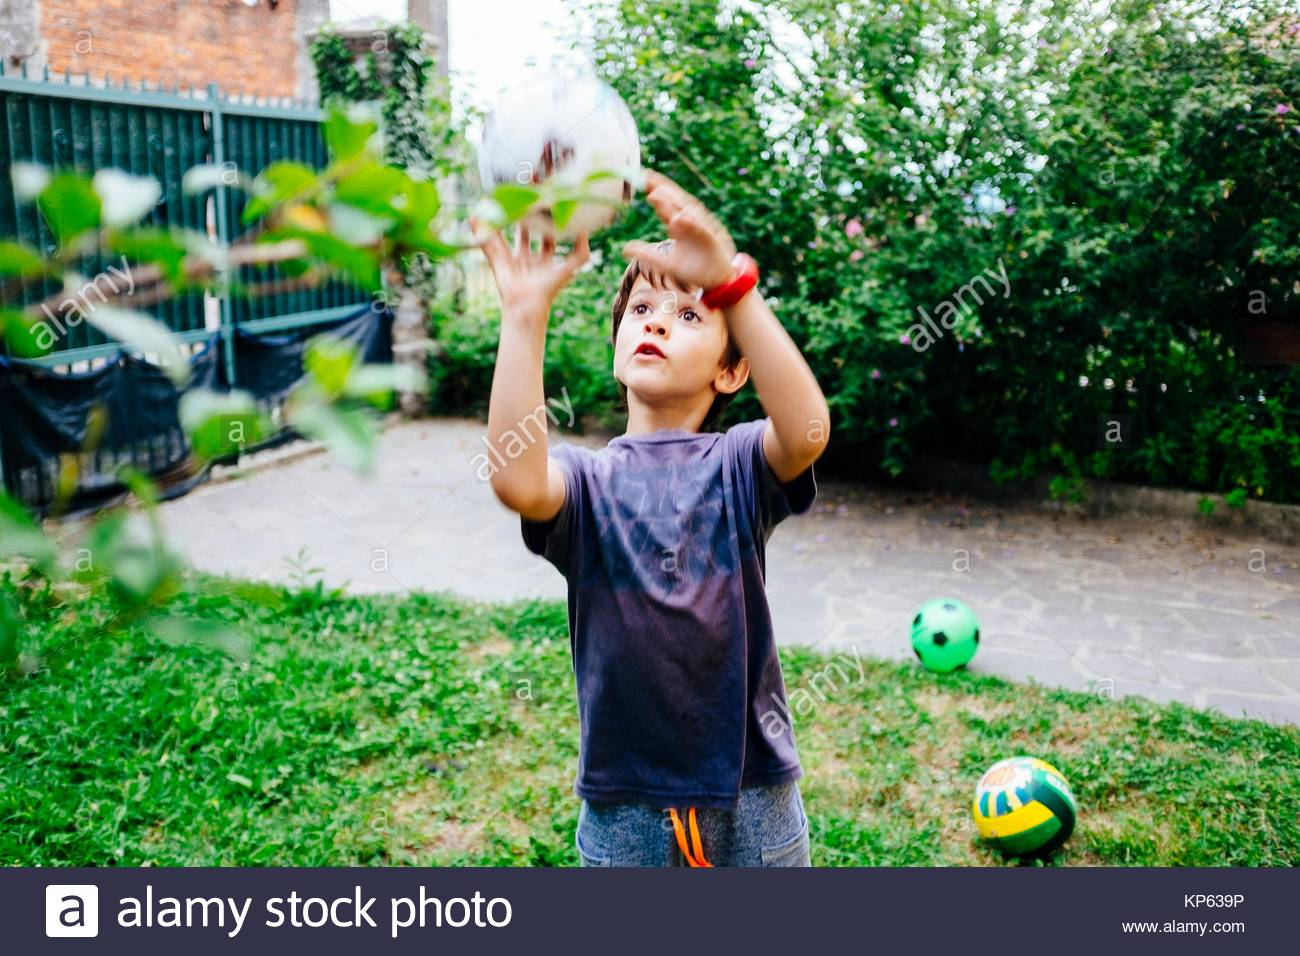 child plays ball in the garden of the house - Stock Image